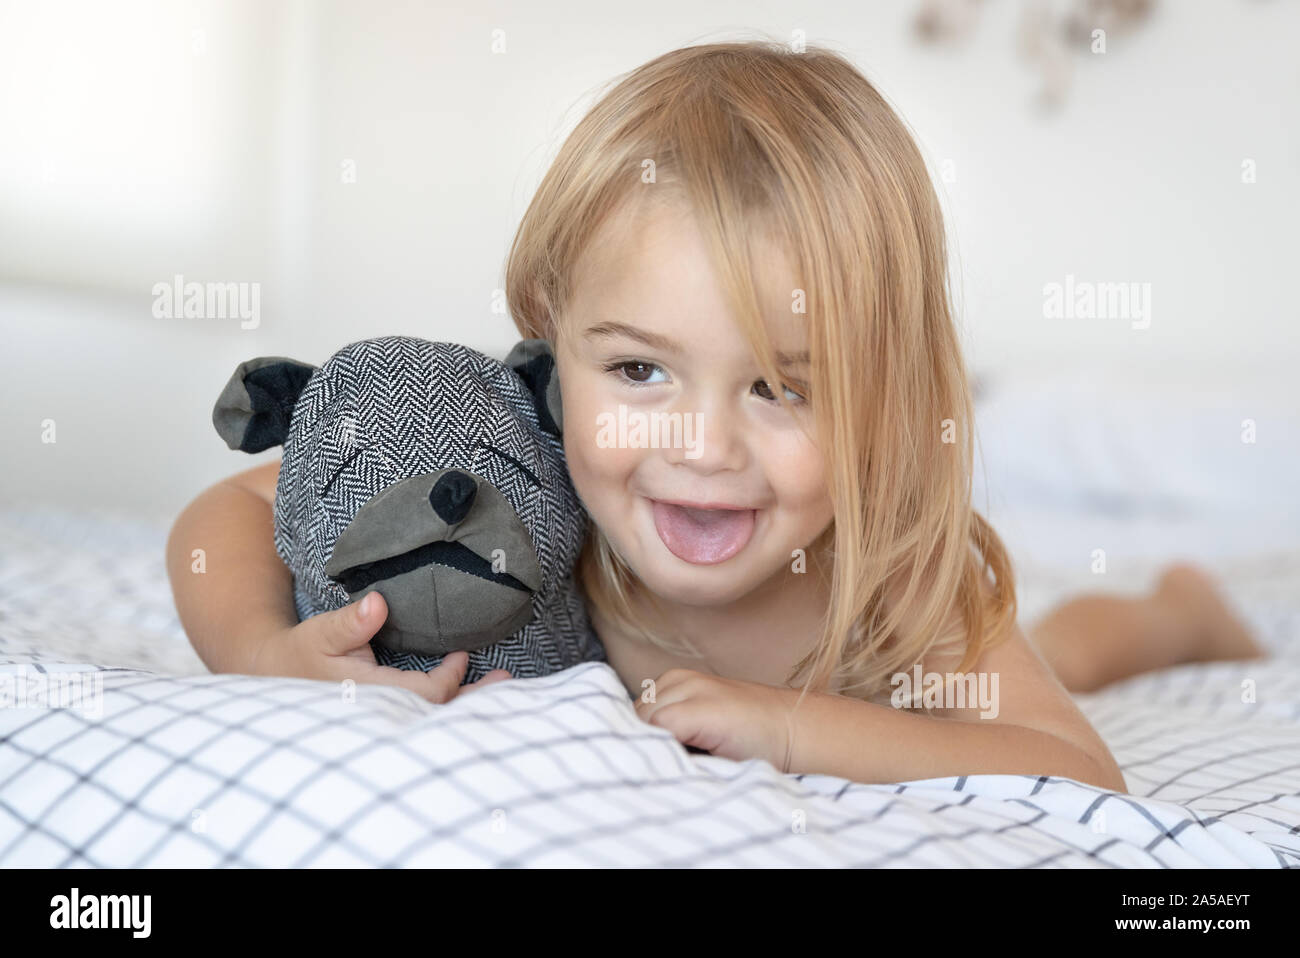 Portrait of a happy little baby boy having fun at home, lying down on the bed with favourite soft toy and making faces, enjoying childhood Stock Photo